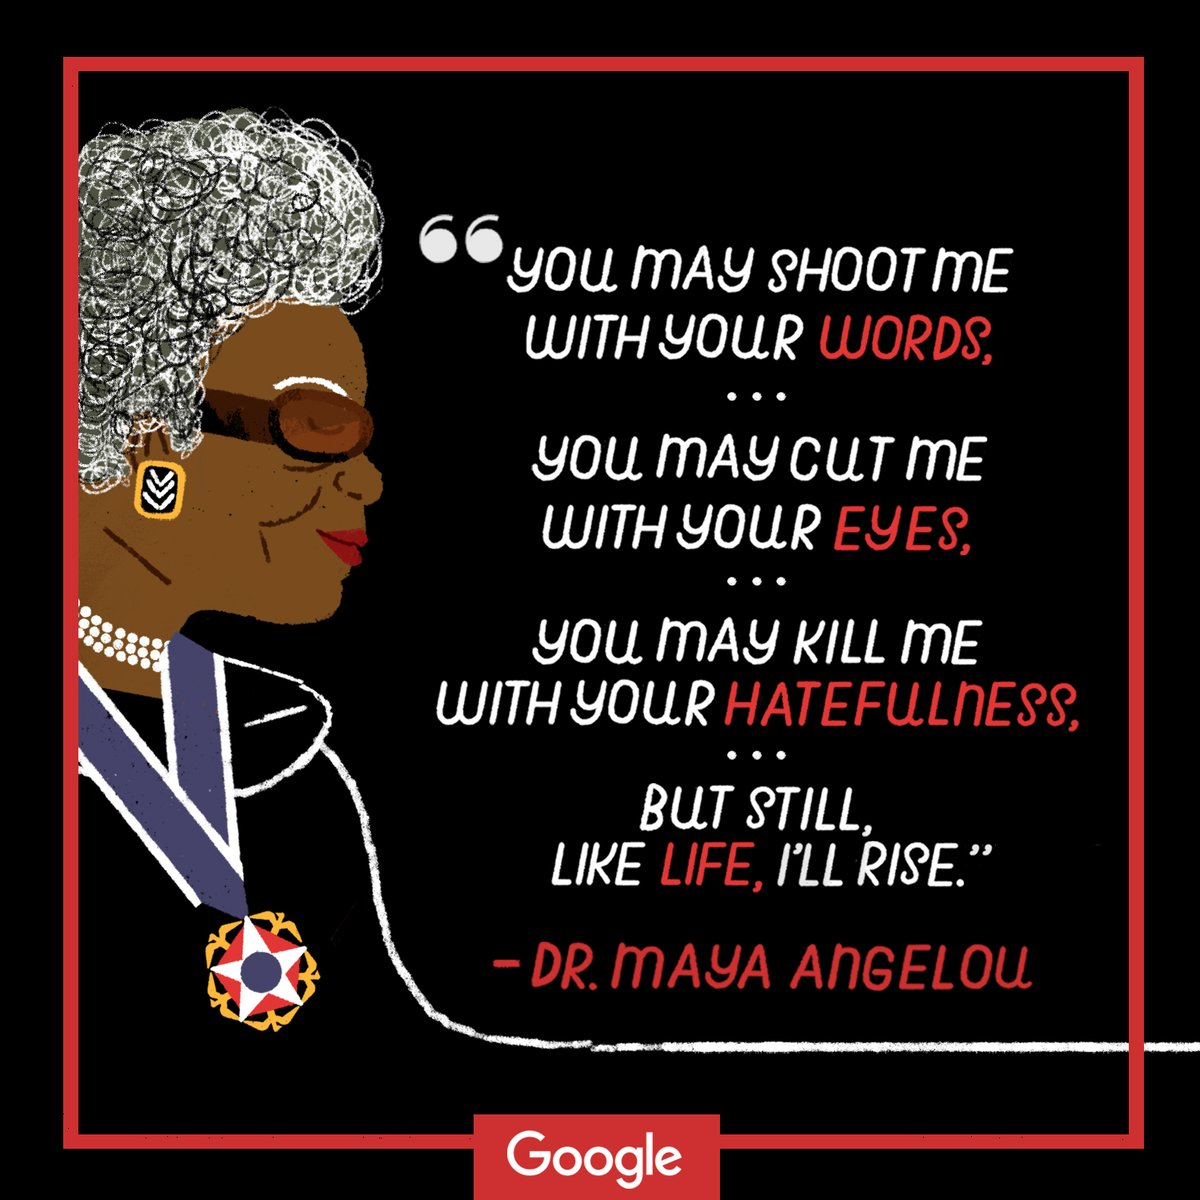 google-created quote in honor of Dr. Maya Angelou's 90th Birthday